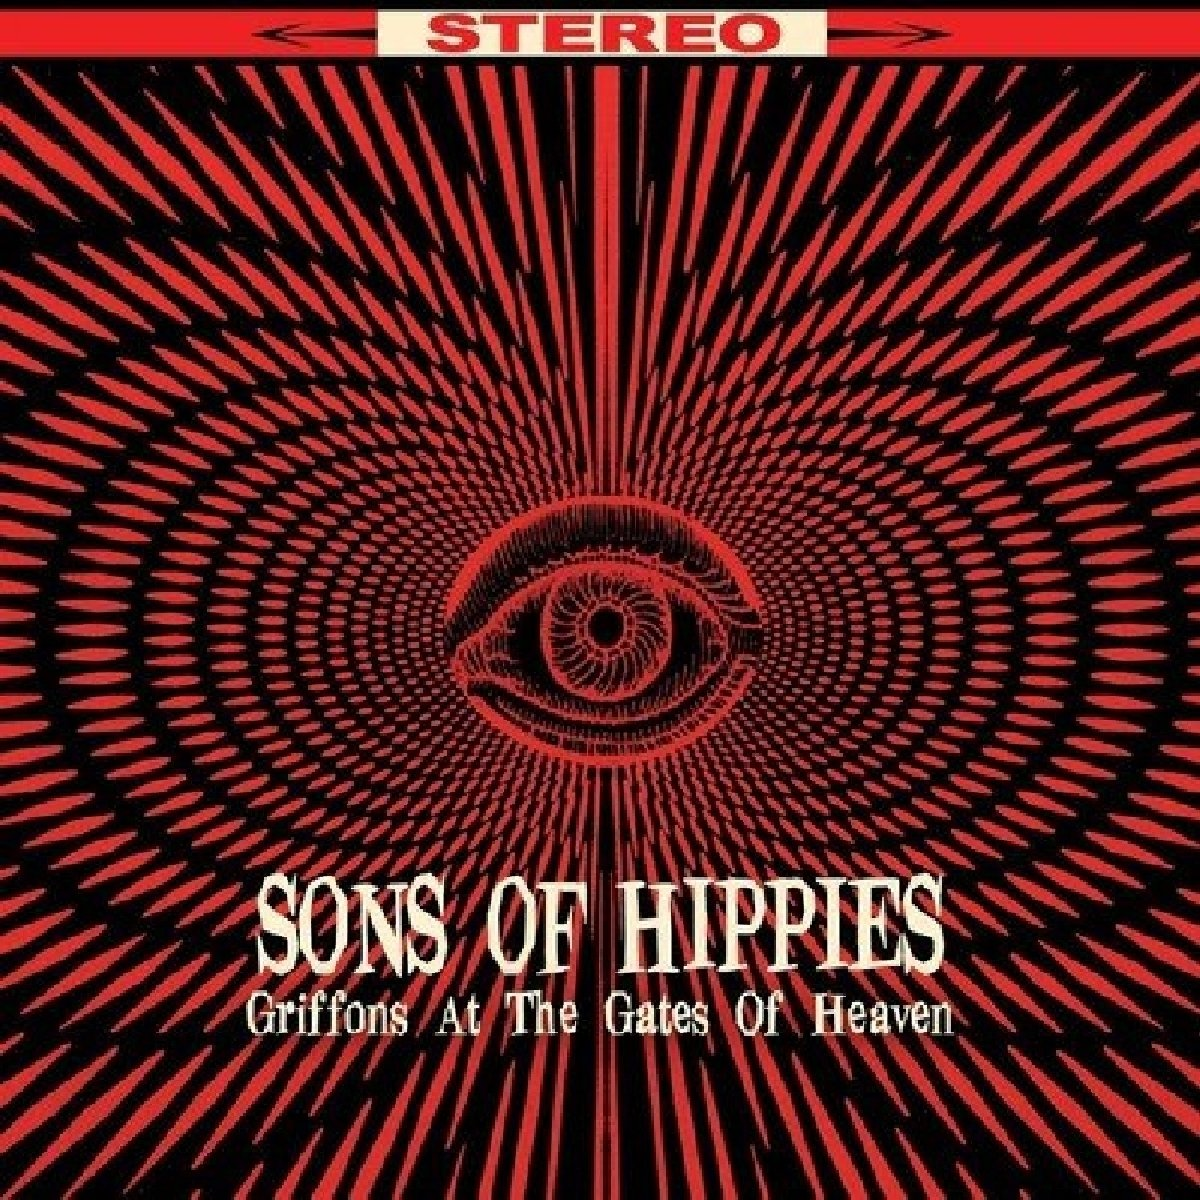 Cassette : Sons of Hippies - Griffons At The Gates Of Heaven (Cassette)